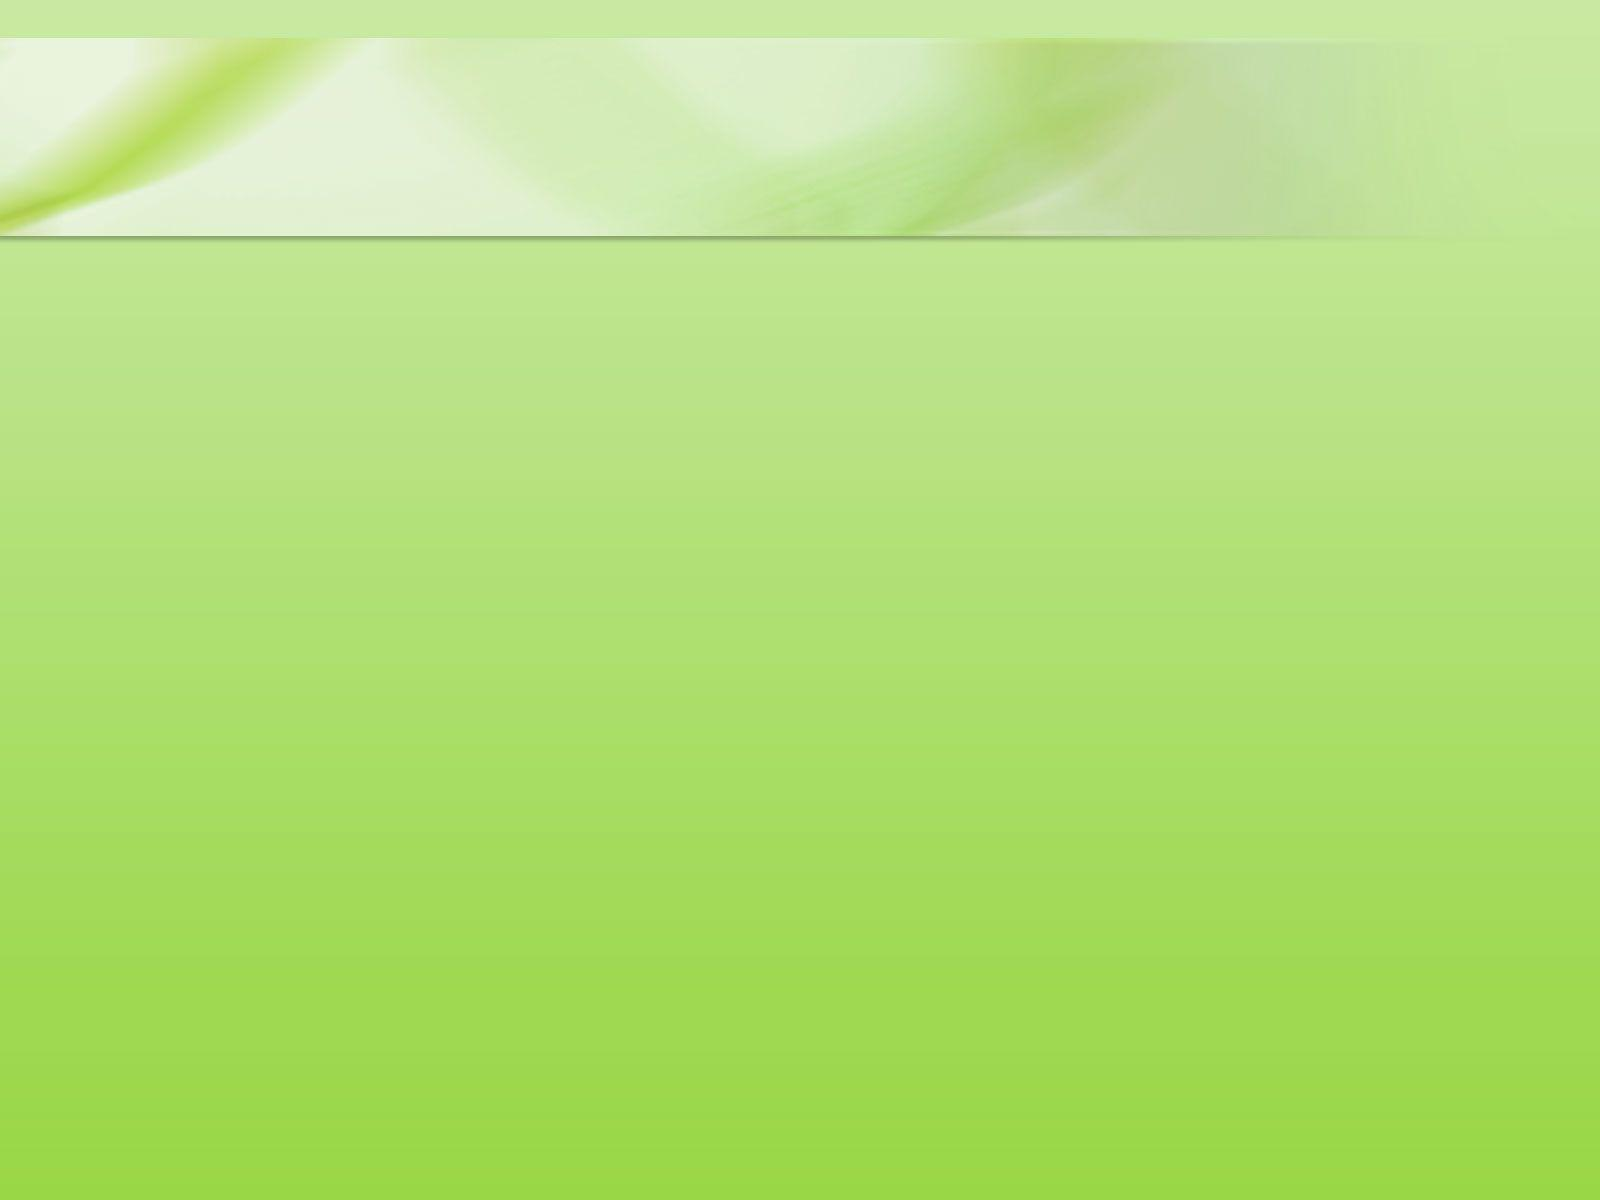 Wallpapers powerpoint terbaru 2015 wallpaper cave for Green and white wallpaper